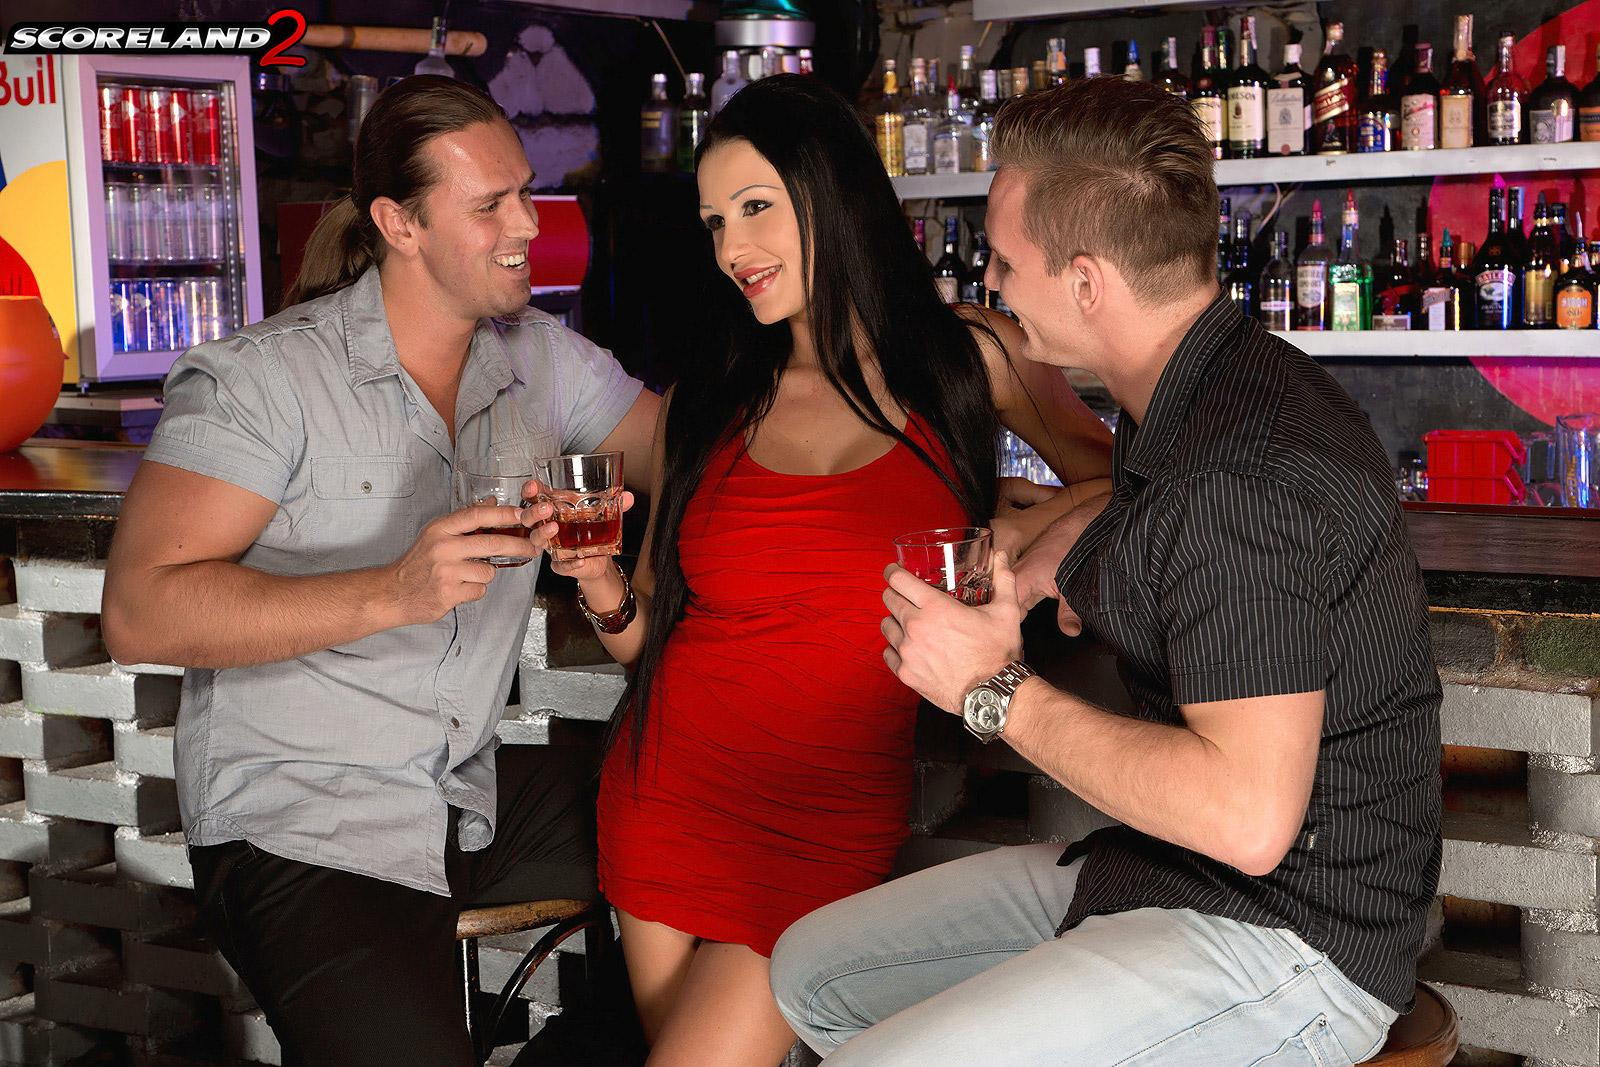 Mind-blowing MILF Patty Michova gives 2 men fellatio simultaneously in a bar